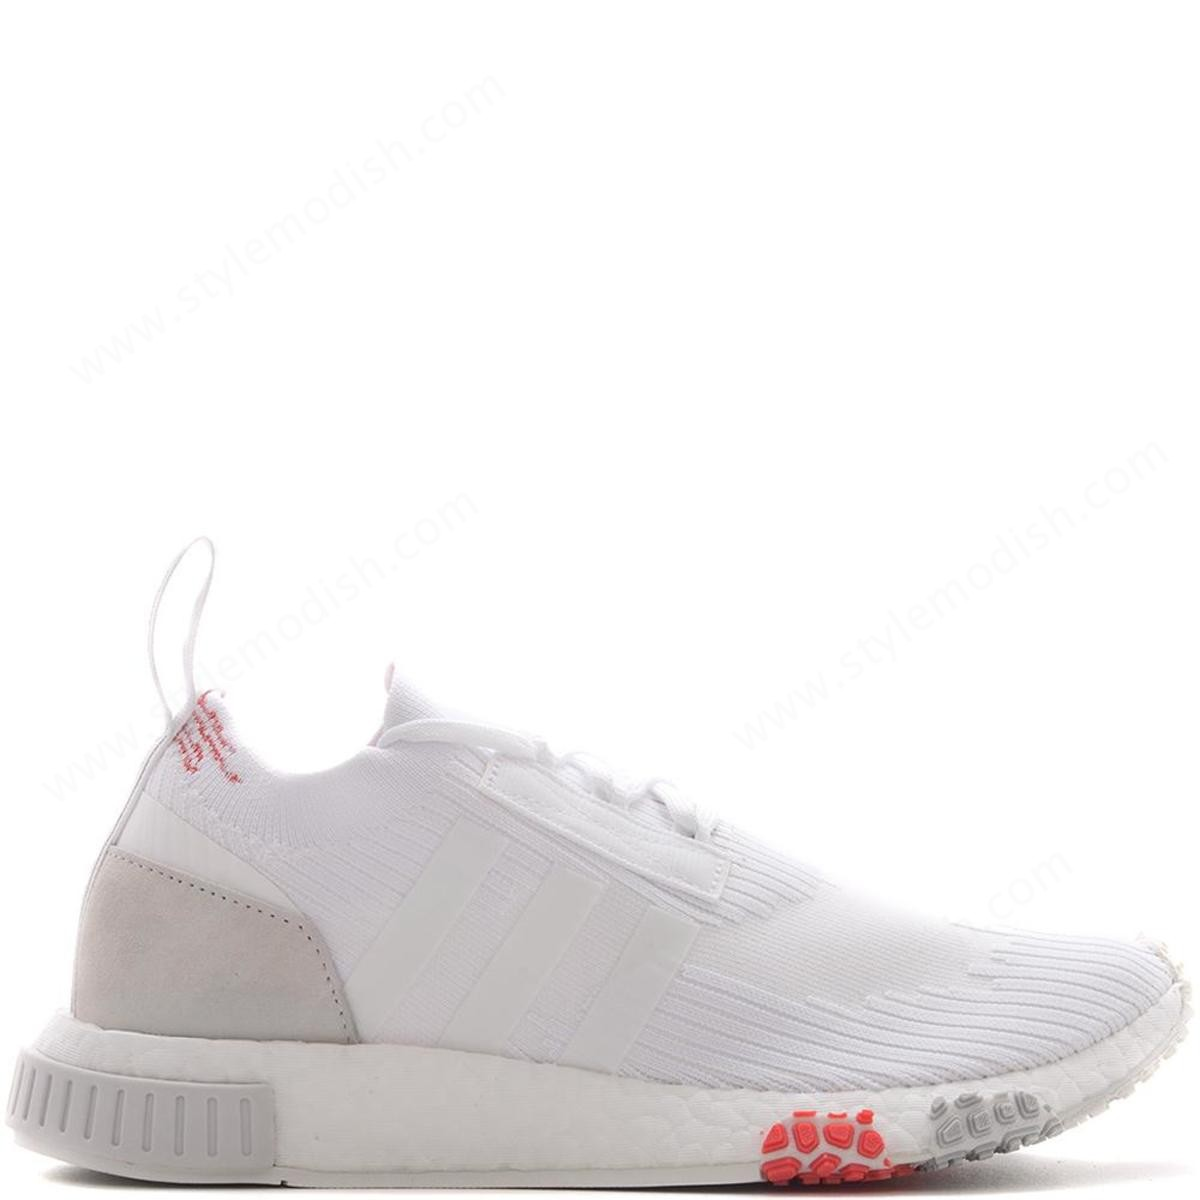 Woman's Adidas Nmd Racer Pk Sneakers - White - Woman's Adidas Nmd Racer Pk Sneakers - White